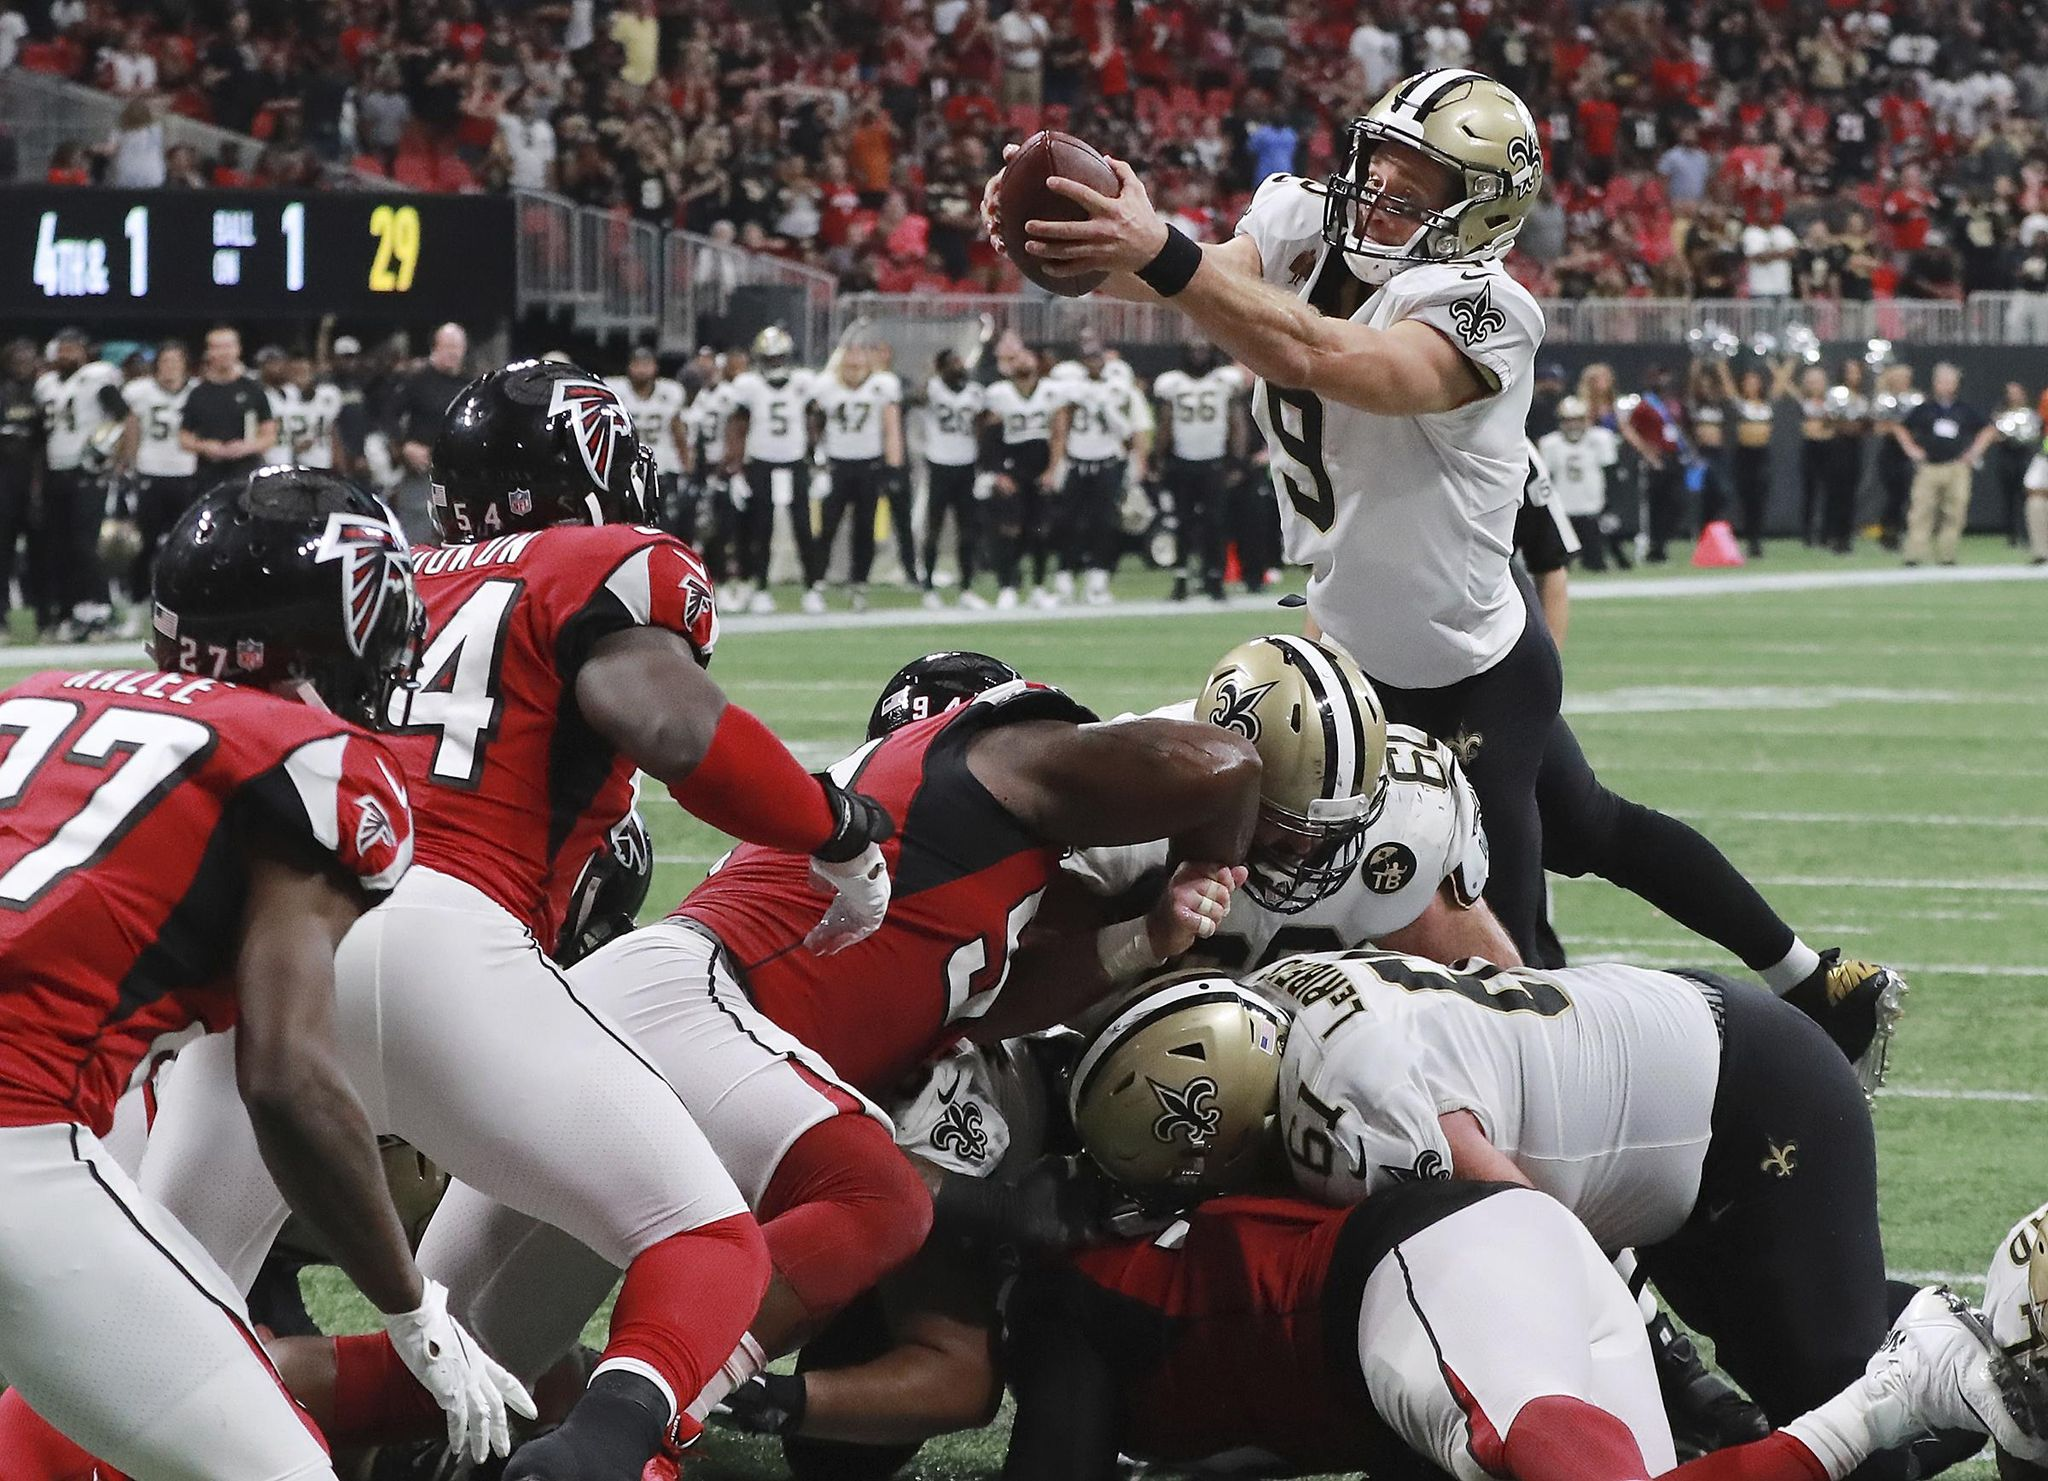 Little defense to be found in Saints' OT win over Falcons - Washington Times